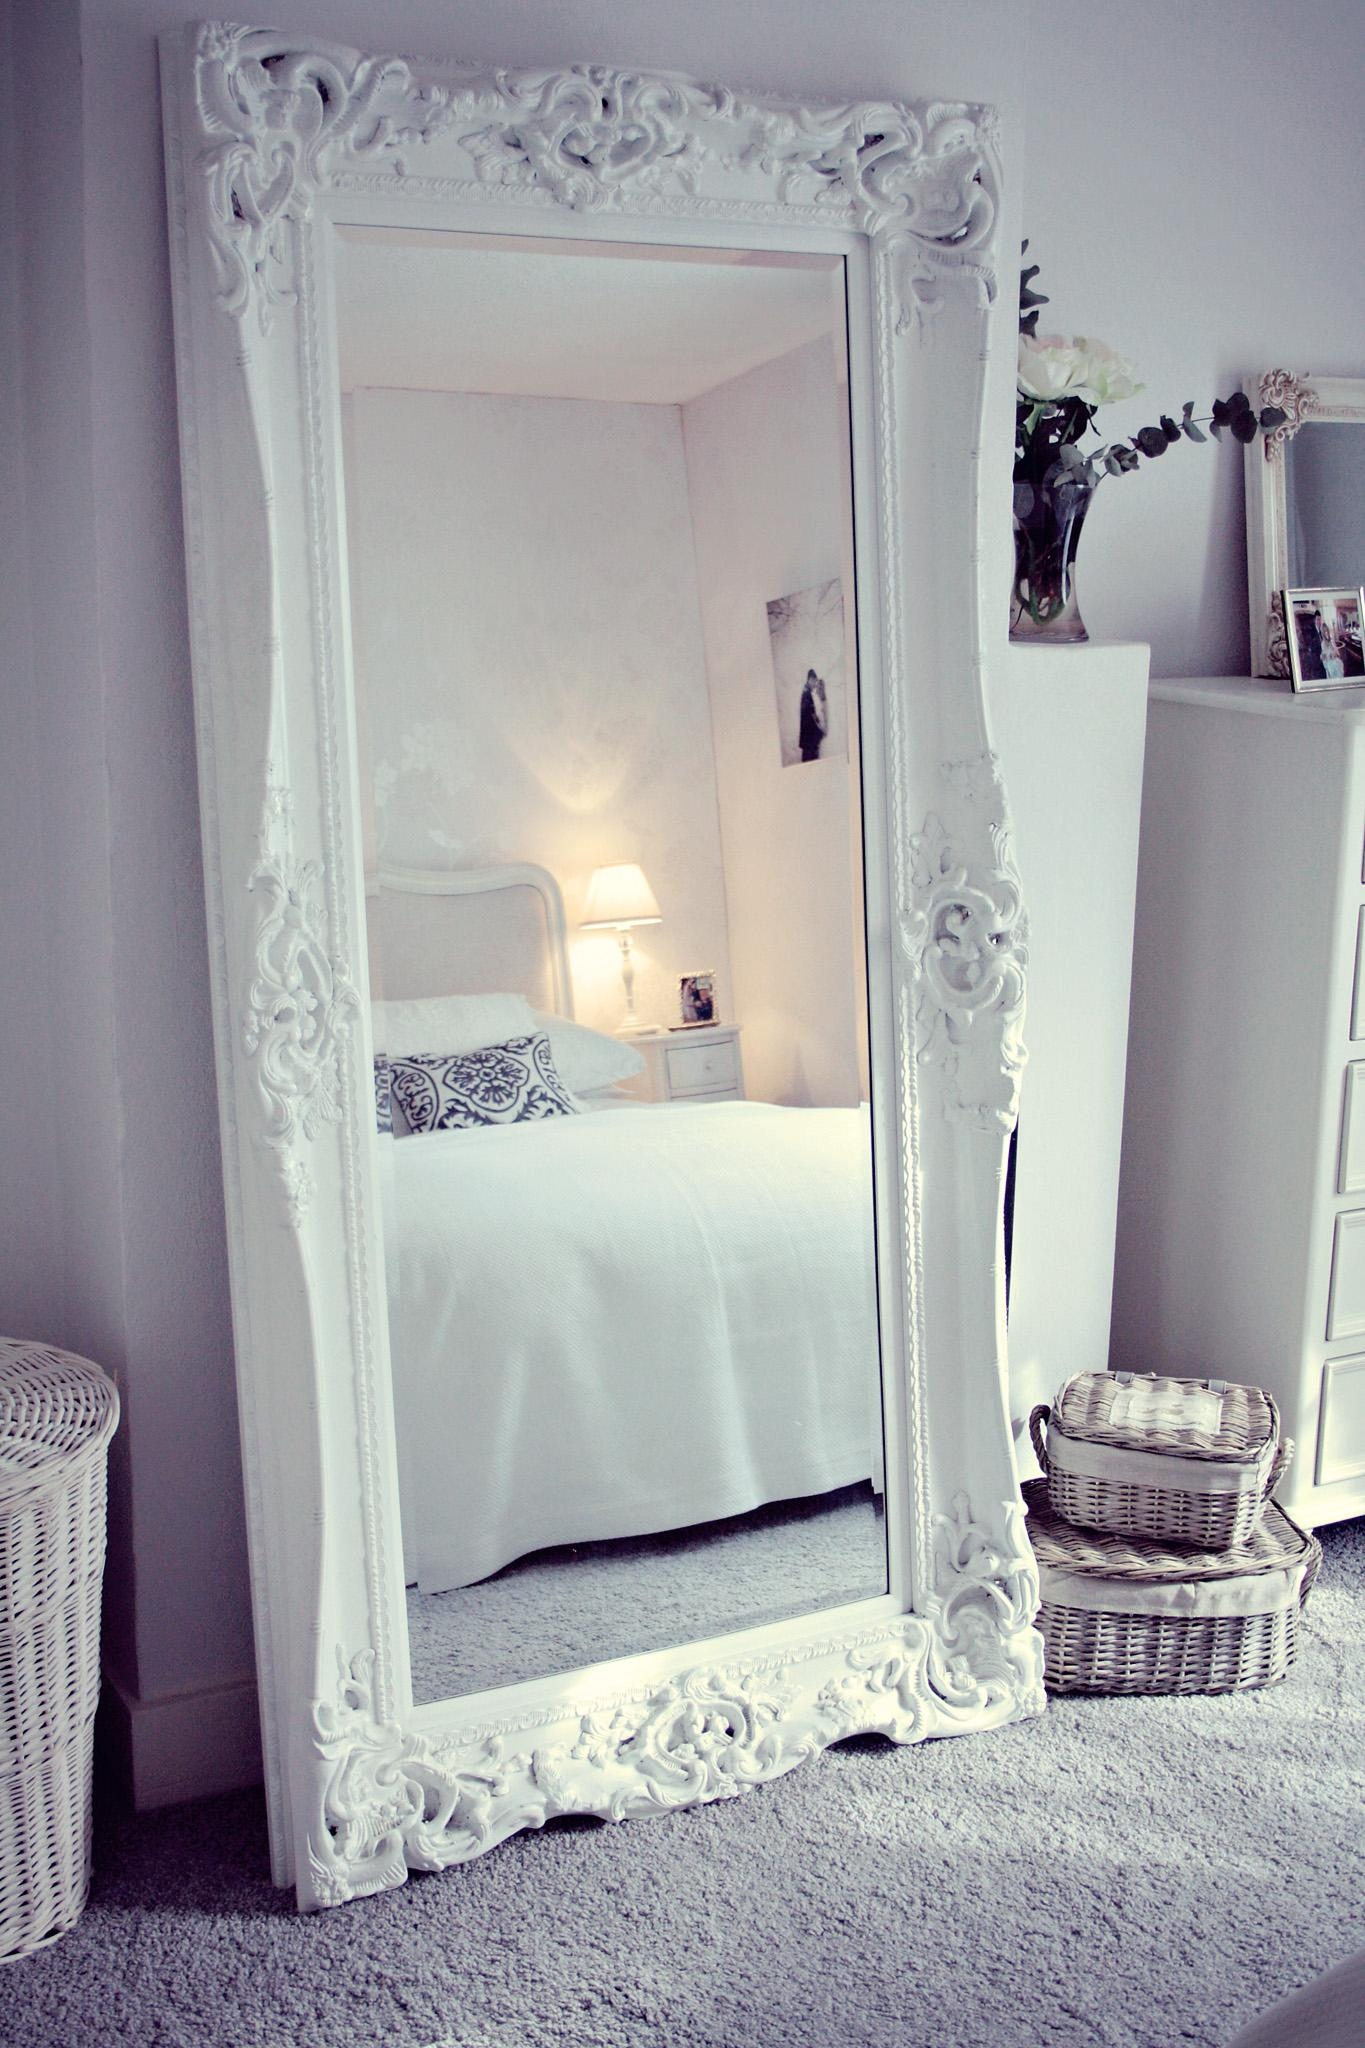 Bedroom Mirrors Main Bedroom Large Mirror My Bespoke Room Jesse Throughout Massive Mirrors (Image 2 of 20)